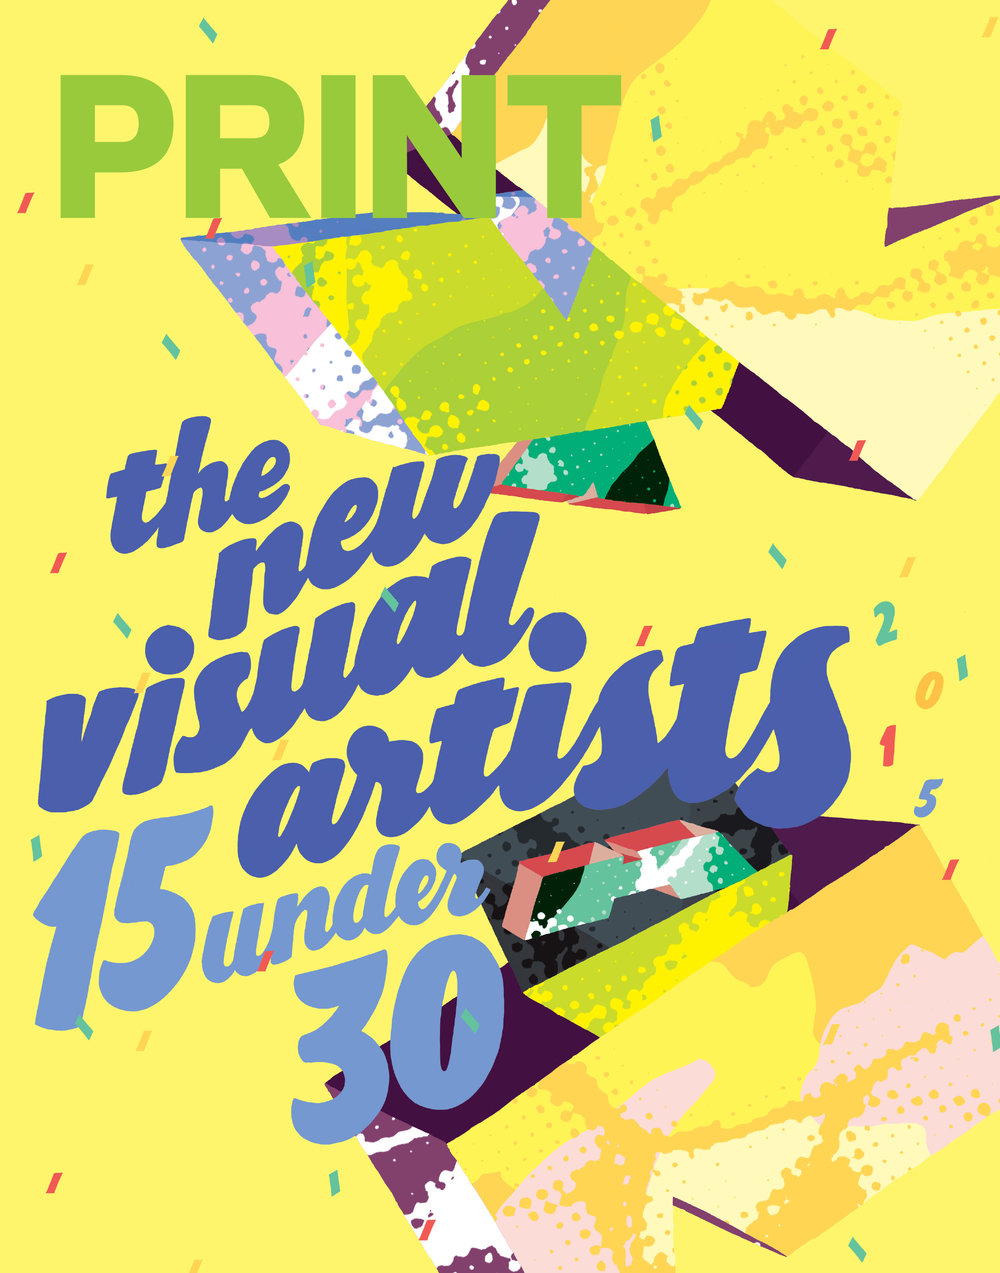 As a 15 Under 30 PRINT Magazine New Visual Artist, I got to design a cover for the mag!